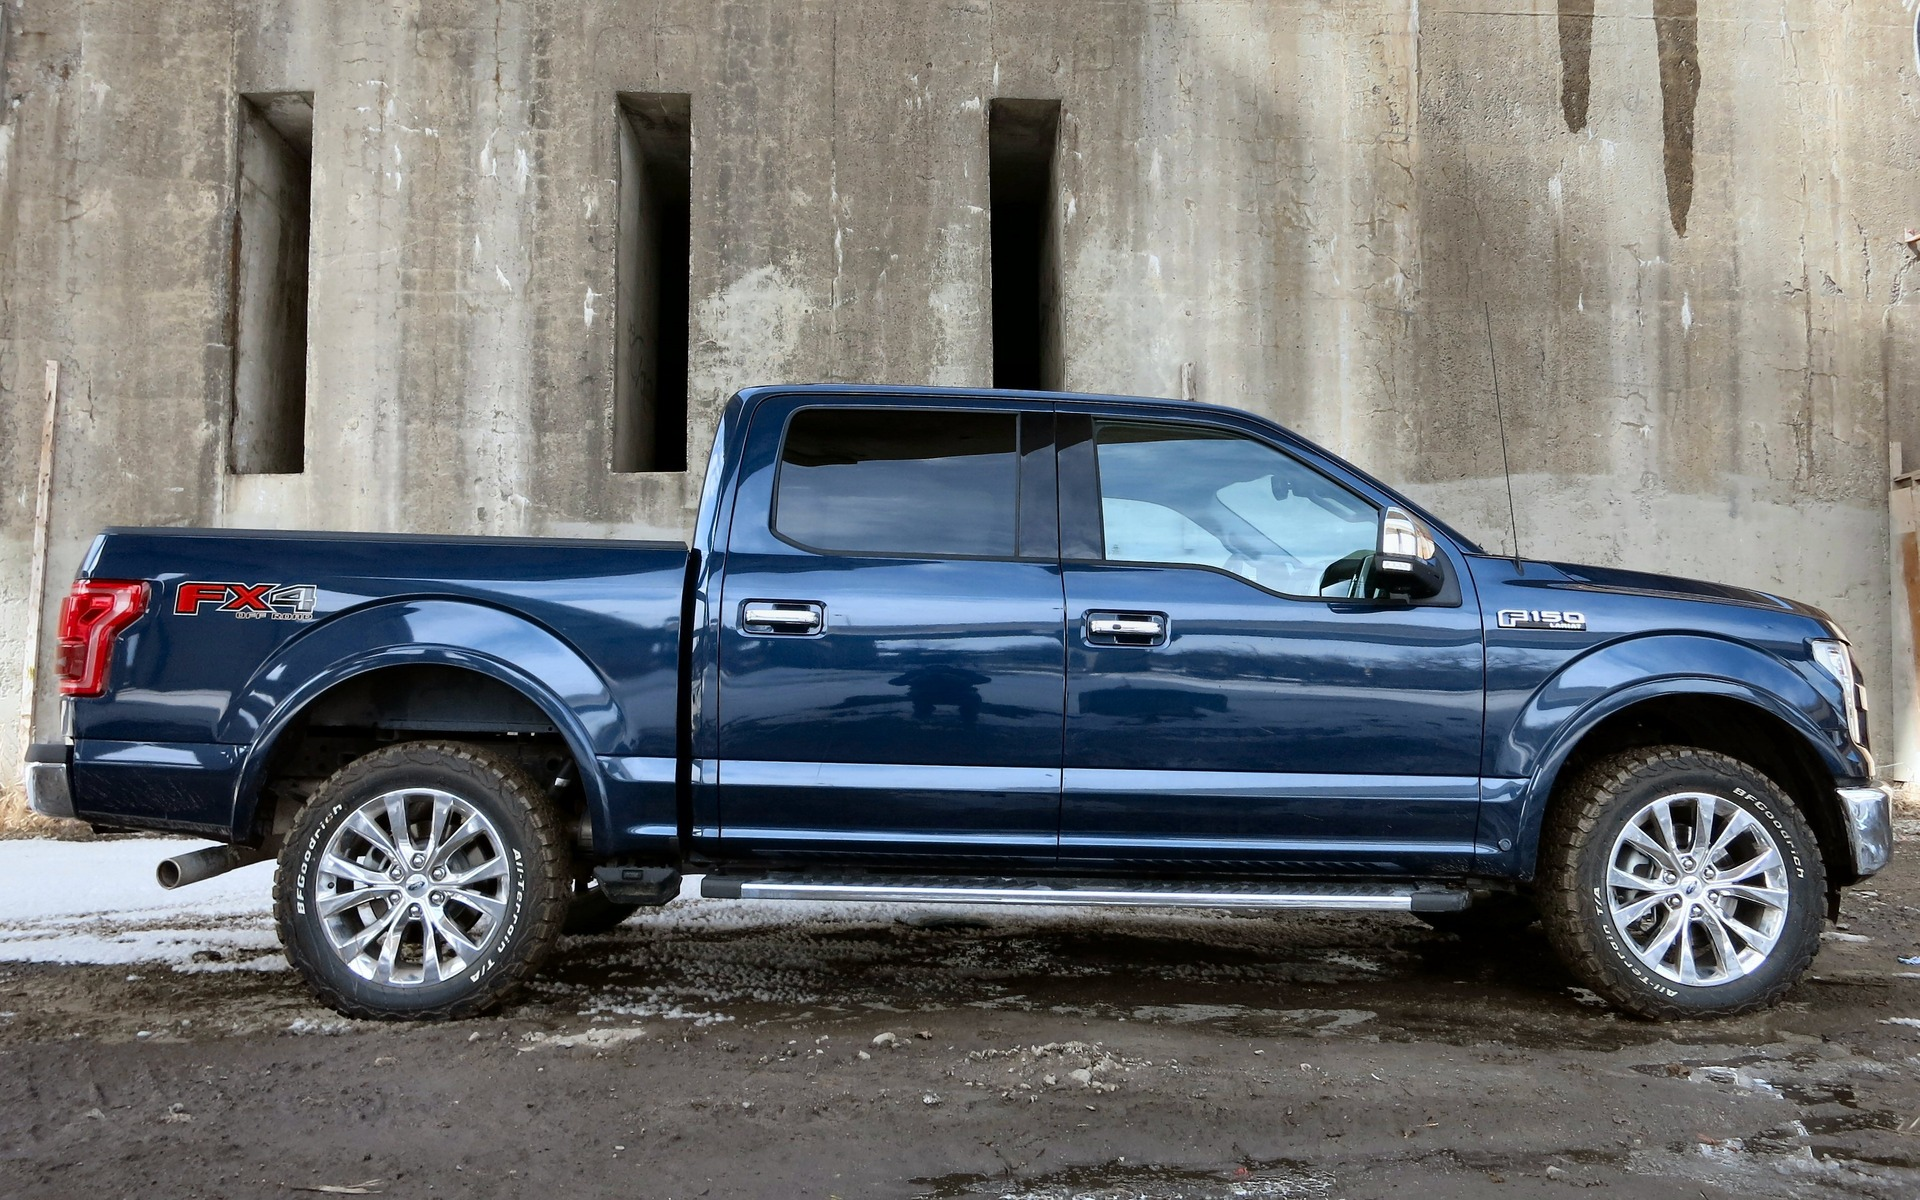 Ford has made a number of important improvements to the 2015 ford f 150